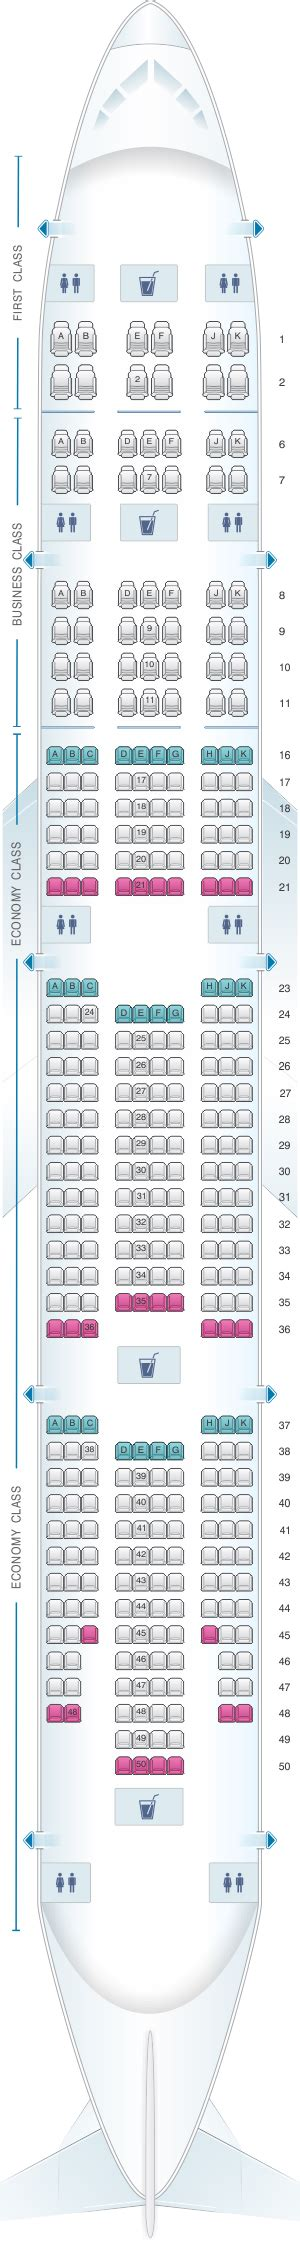 boeing 777 300er business class seats emirates seat map emirates boeing b777 300er three class seatmaestro